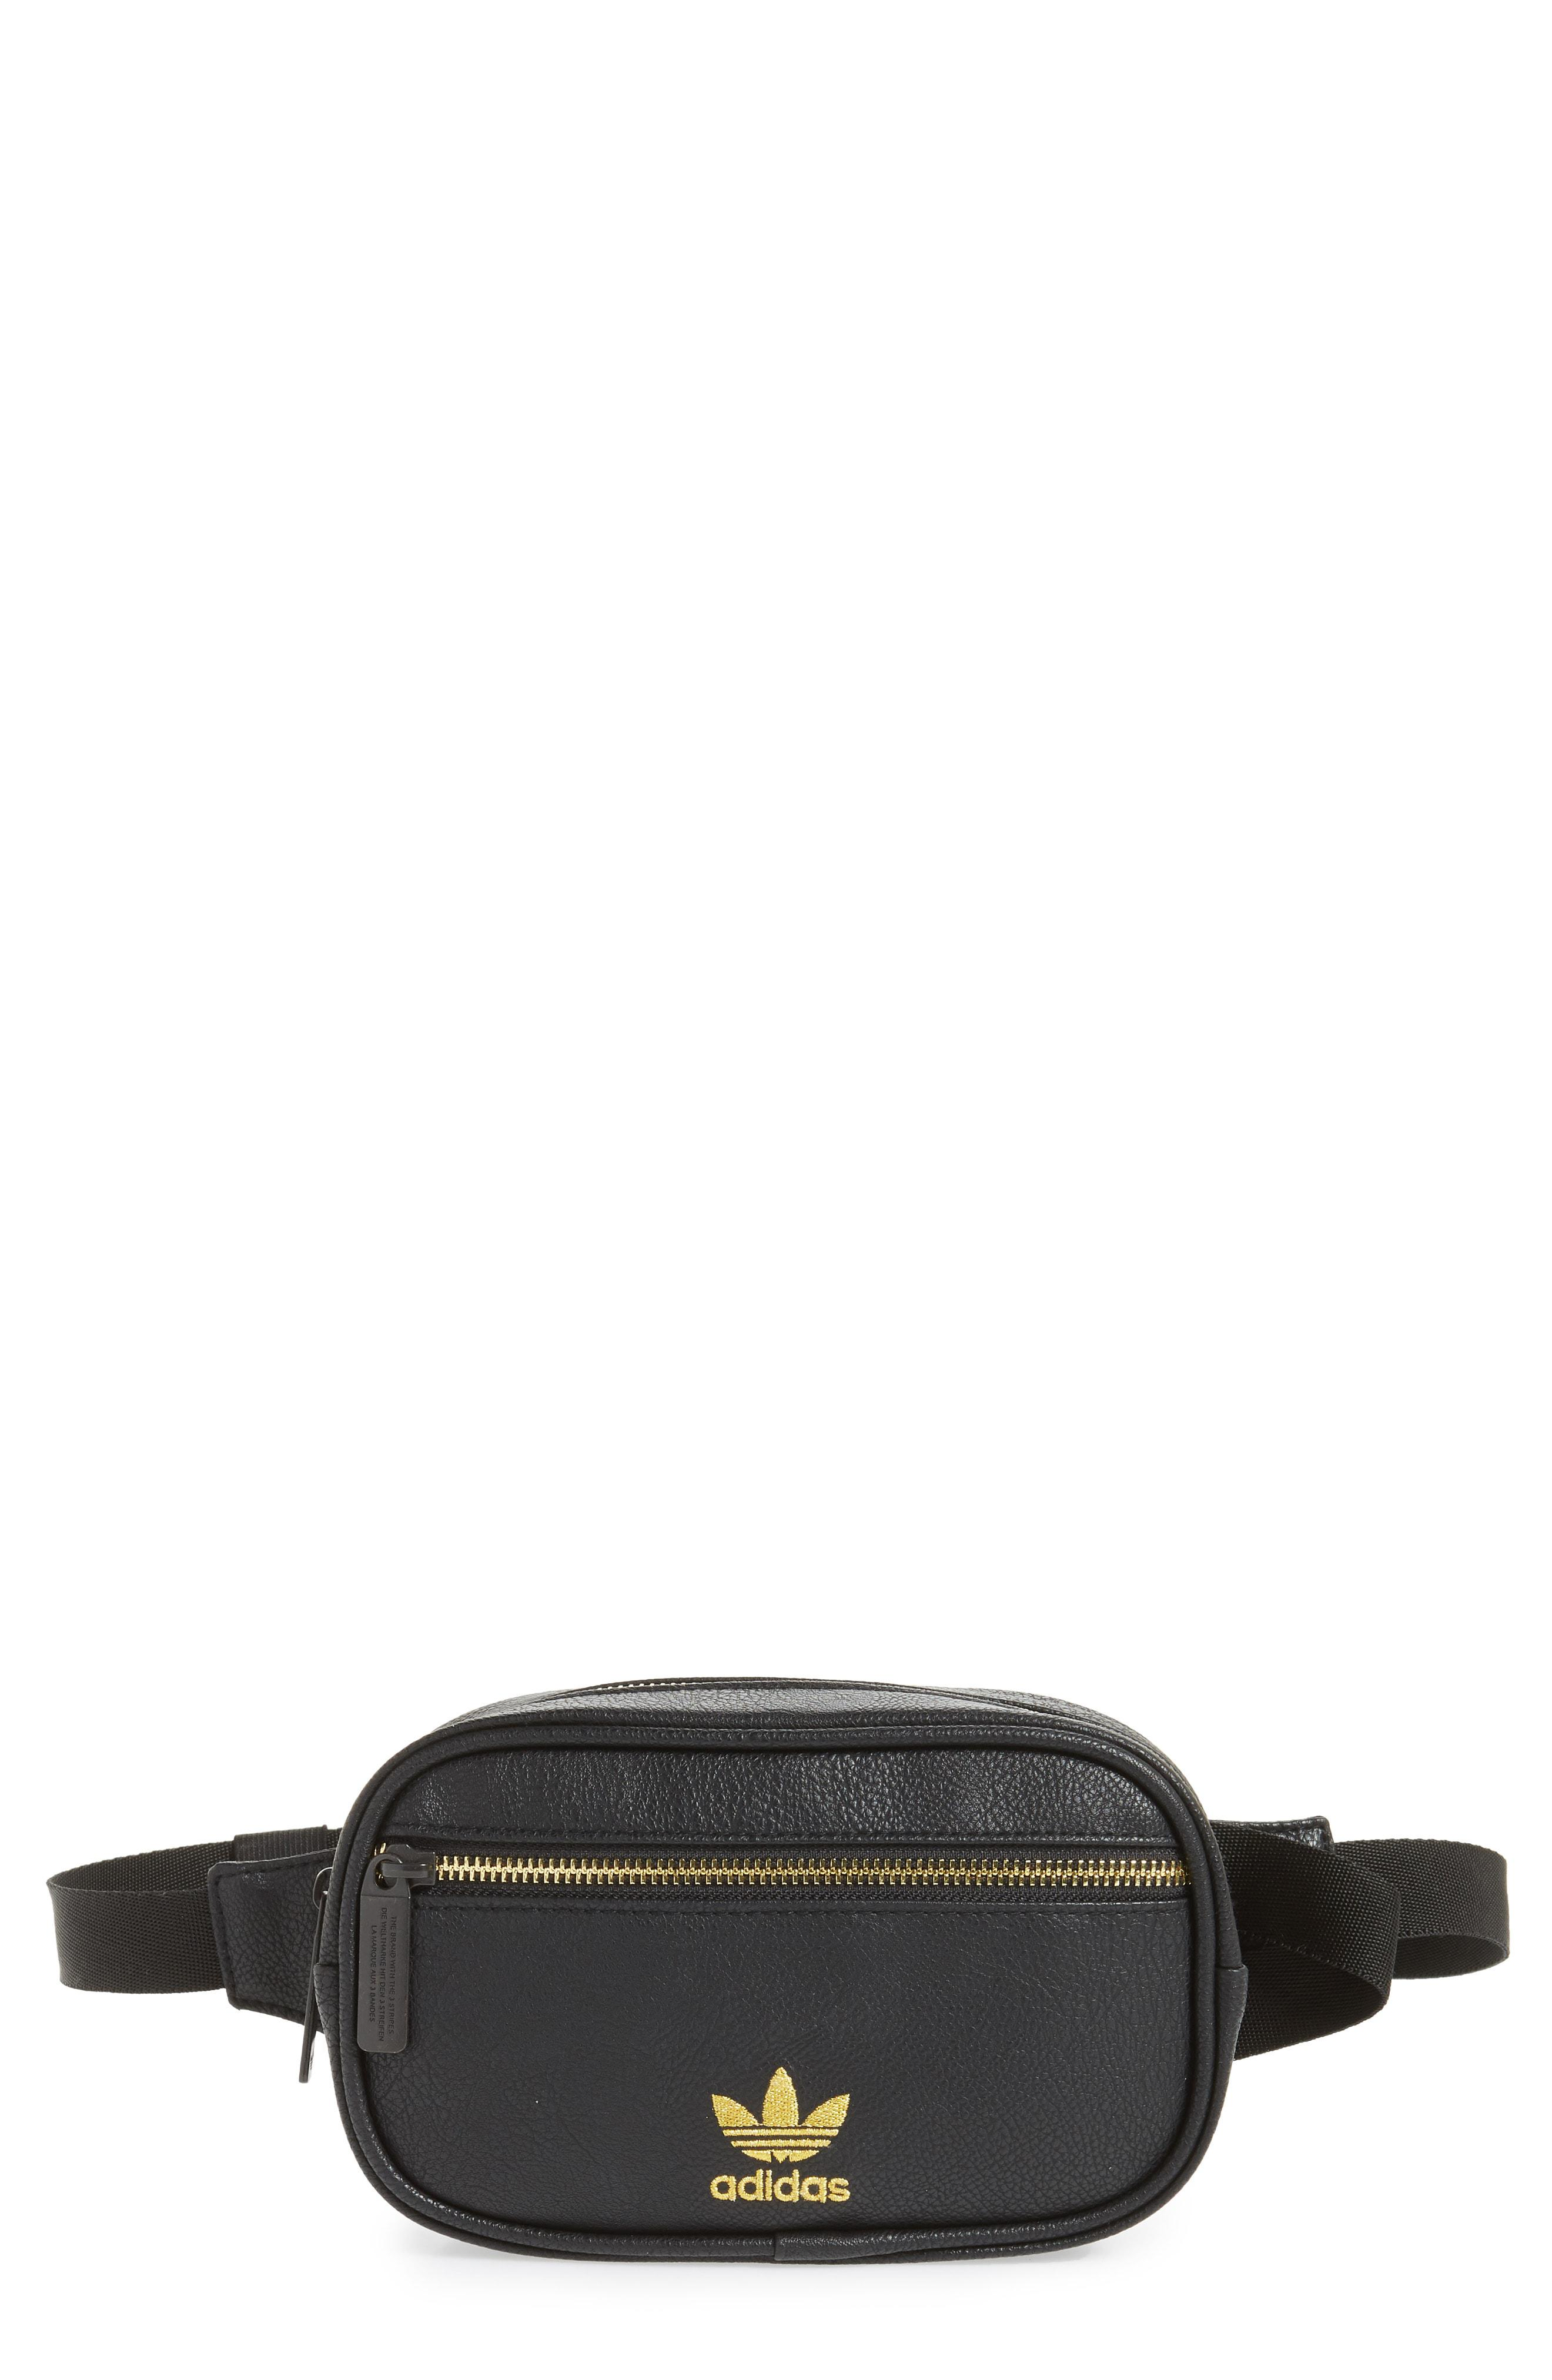 Lyst - adidas Originals Adidas Ori Faux Leather Fanny Pack in Black cd323c136